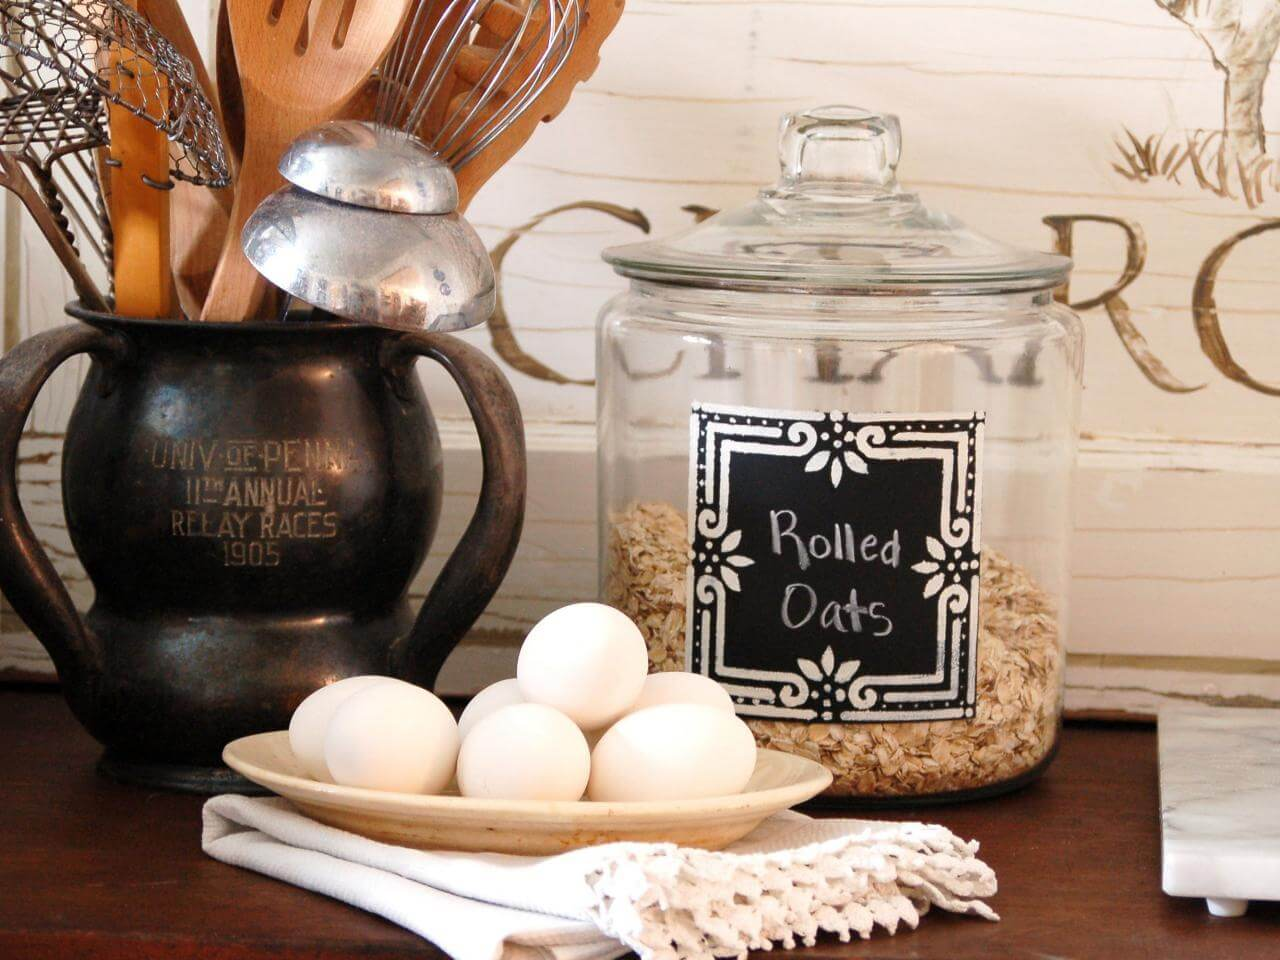 Cute Chalkboard Labels on Glass Canisters